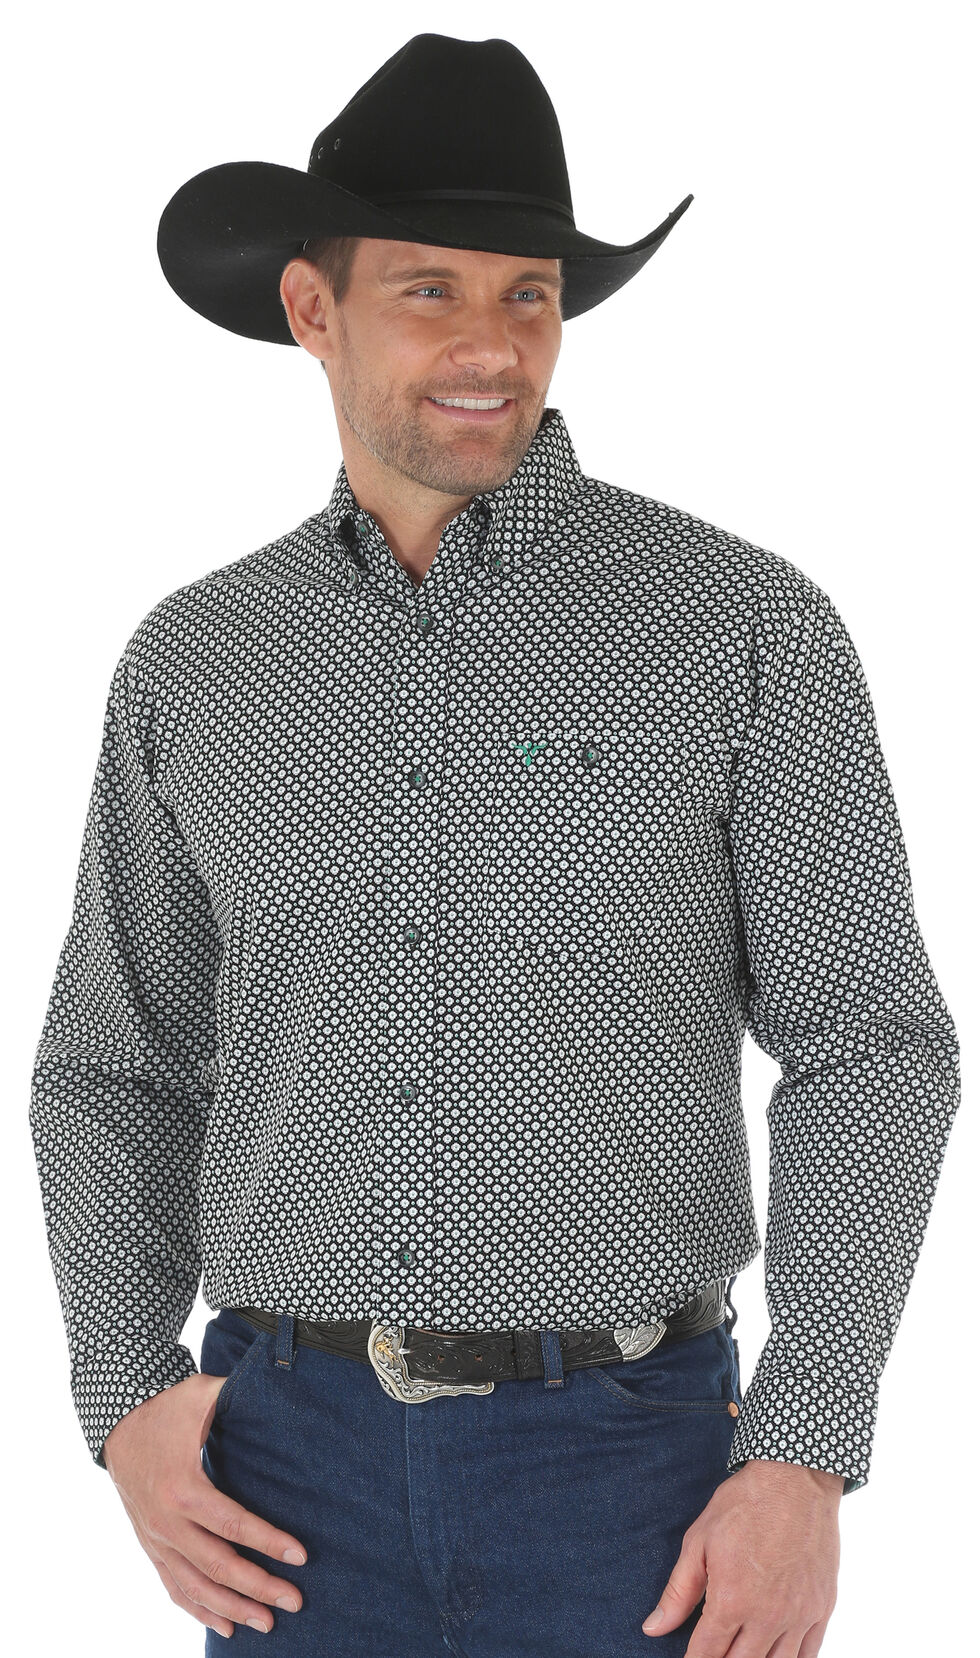 Wrangler 20X Men's Green/Black Advanced Comfort Competition Shirt - Big & Tall, Green, hi-res